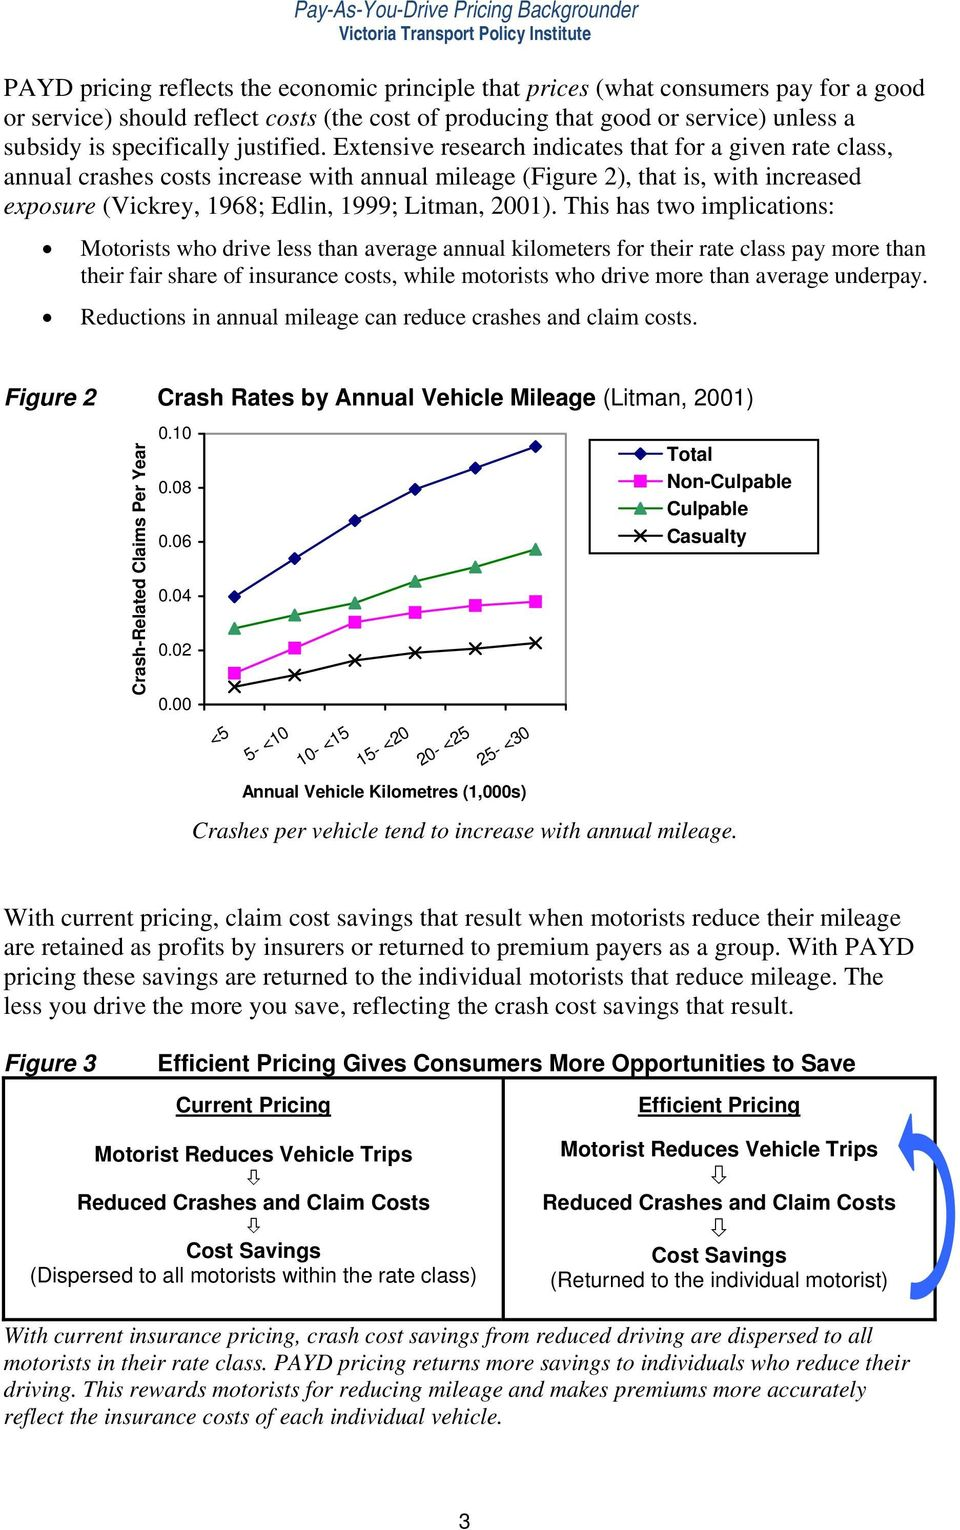 Extensive research indicates that for a given rate class, annual crashes costs increase with annual mileage (Figure 2), that is, with increased exposure (Vickrey, 1968; Edlin, 1999; Litman, 2001).